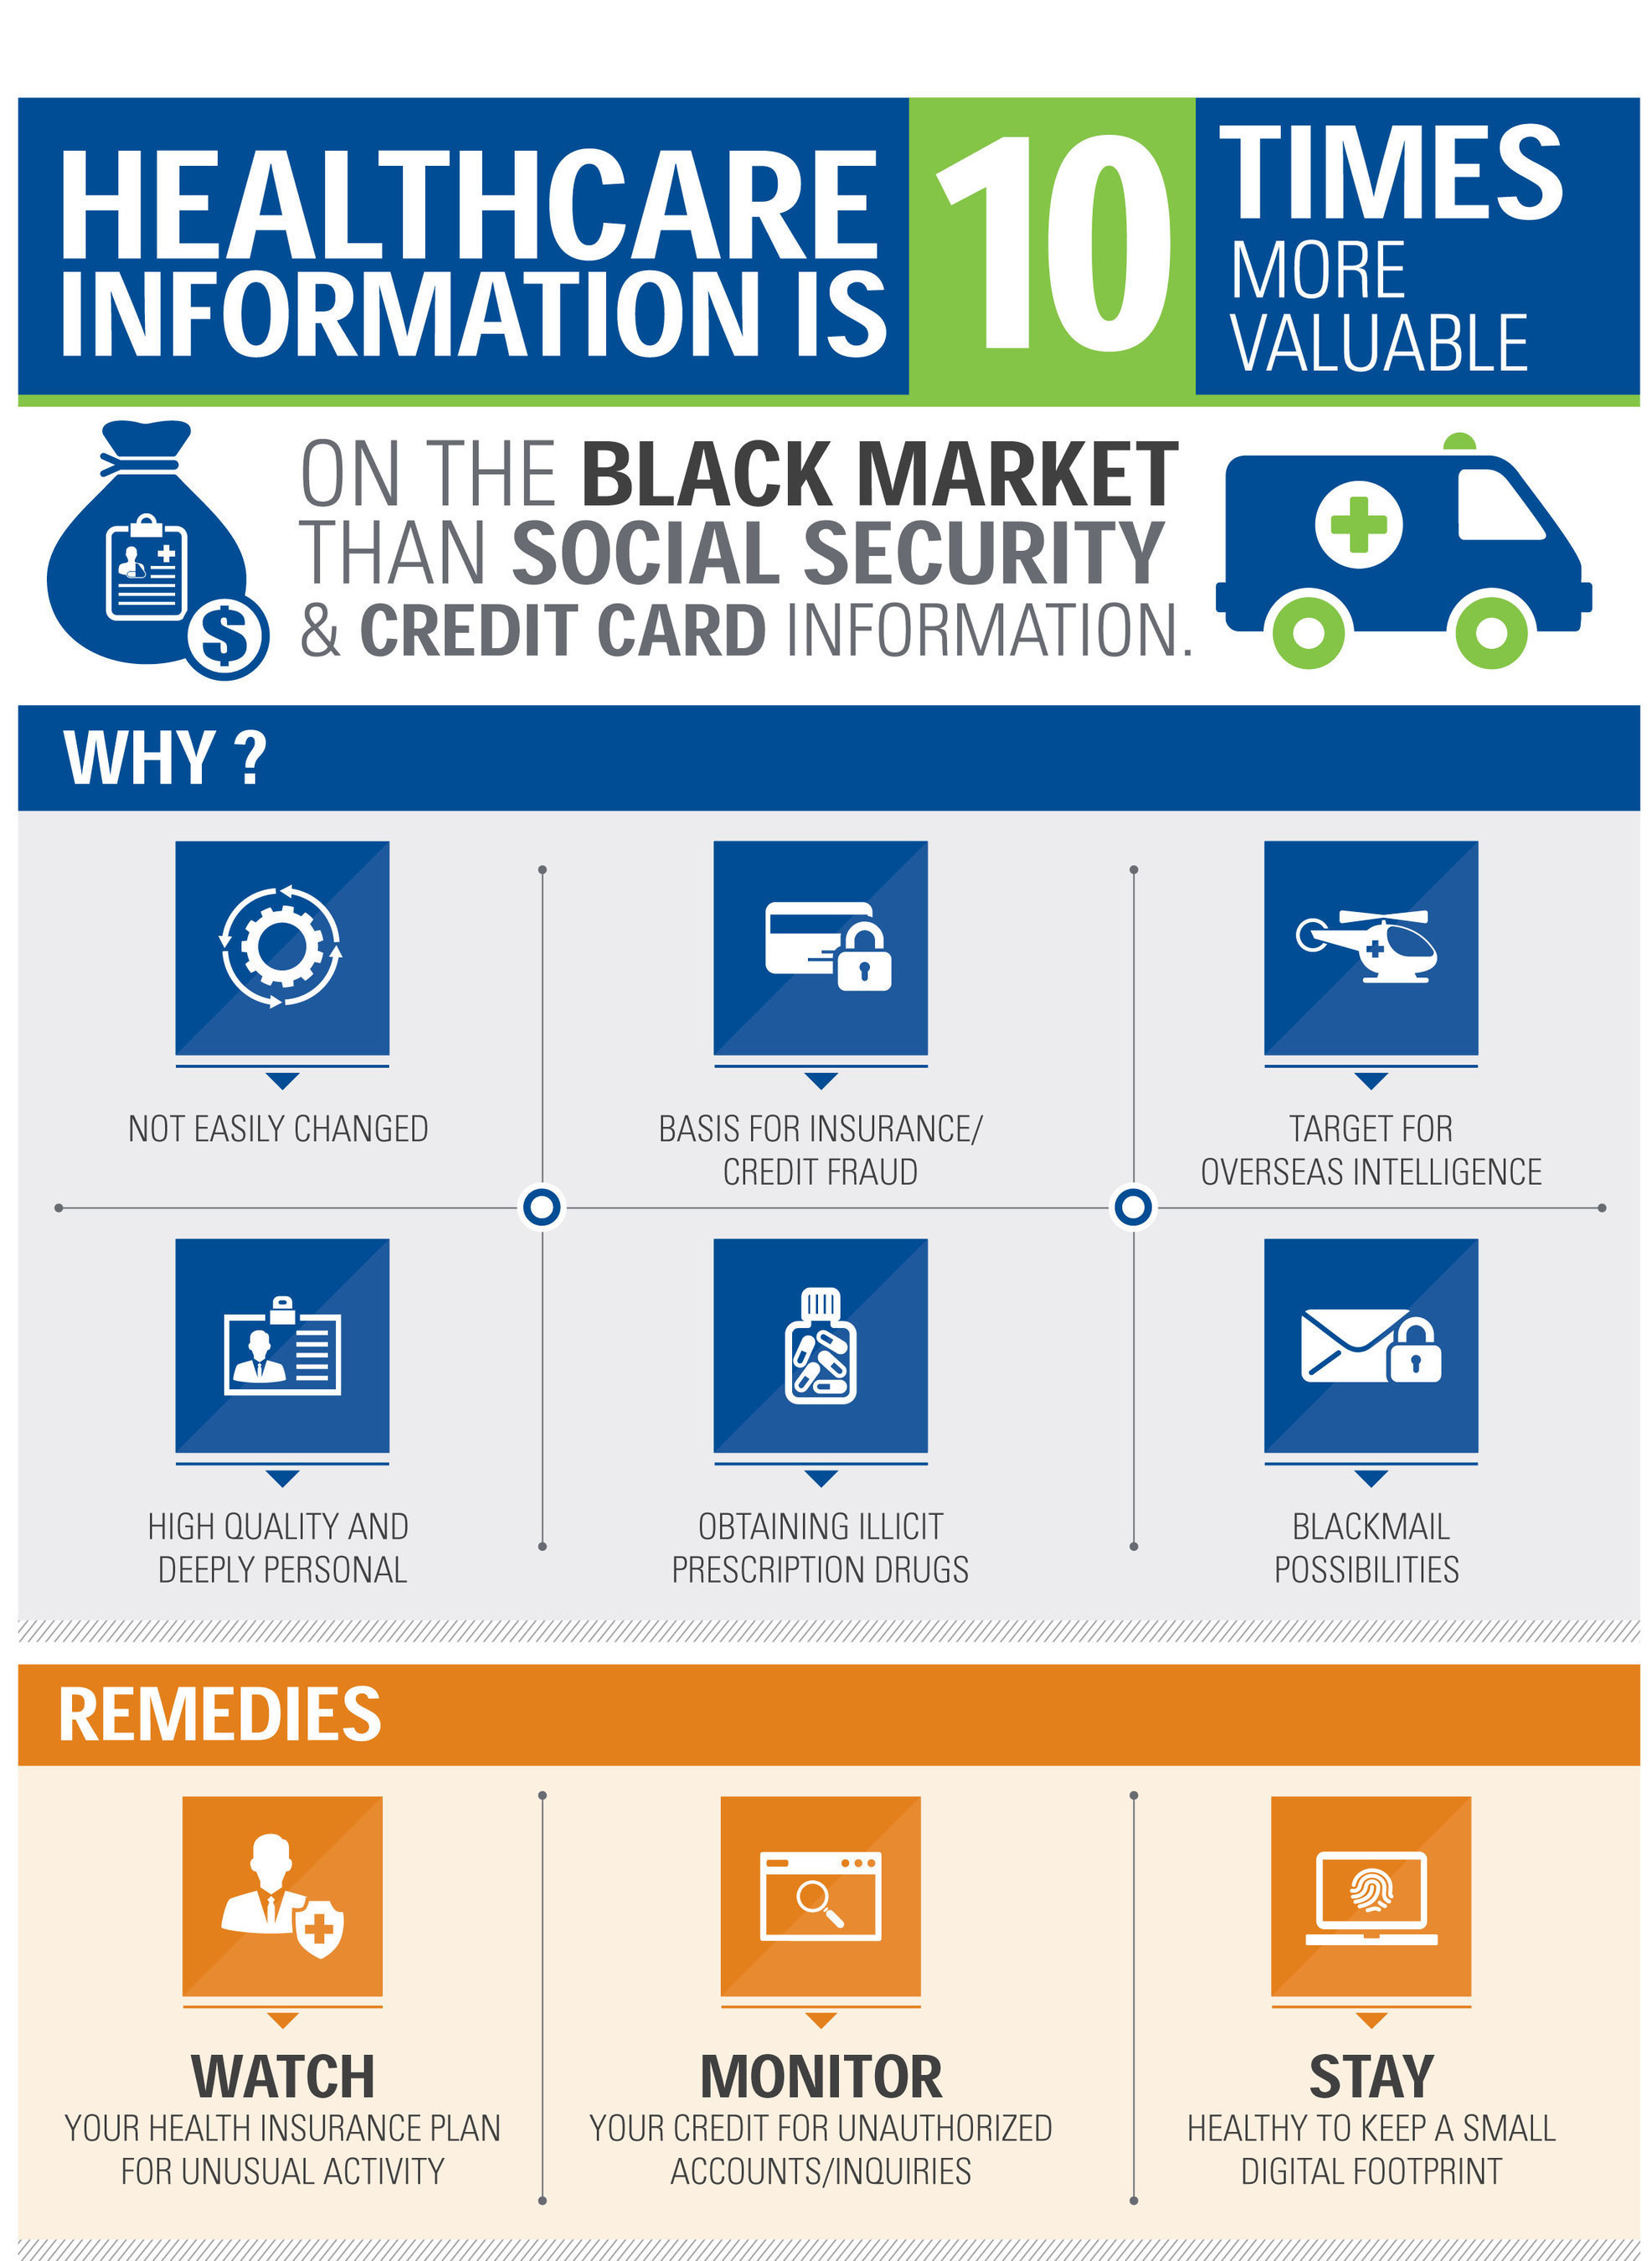 Why healthcare information is valuable -- KPMG infographic.